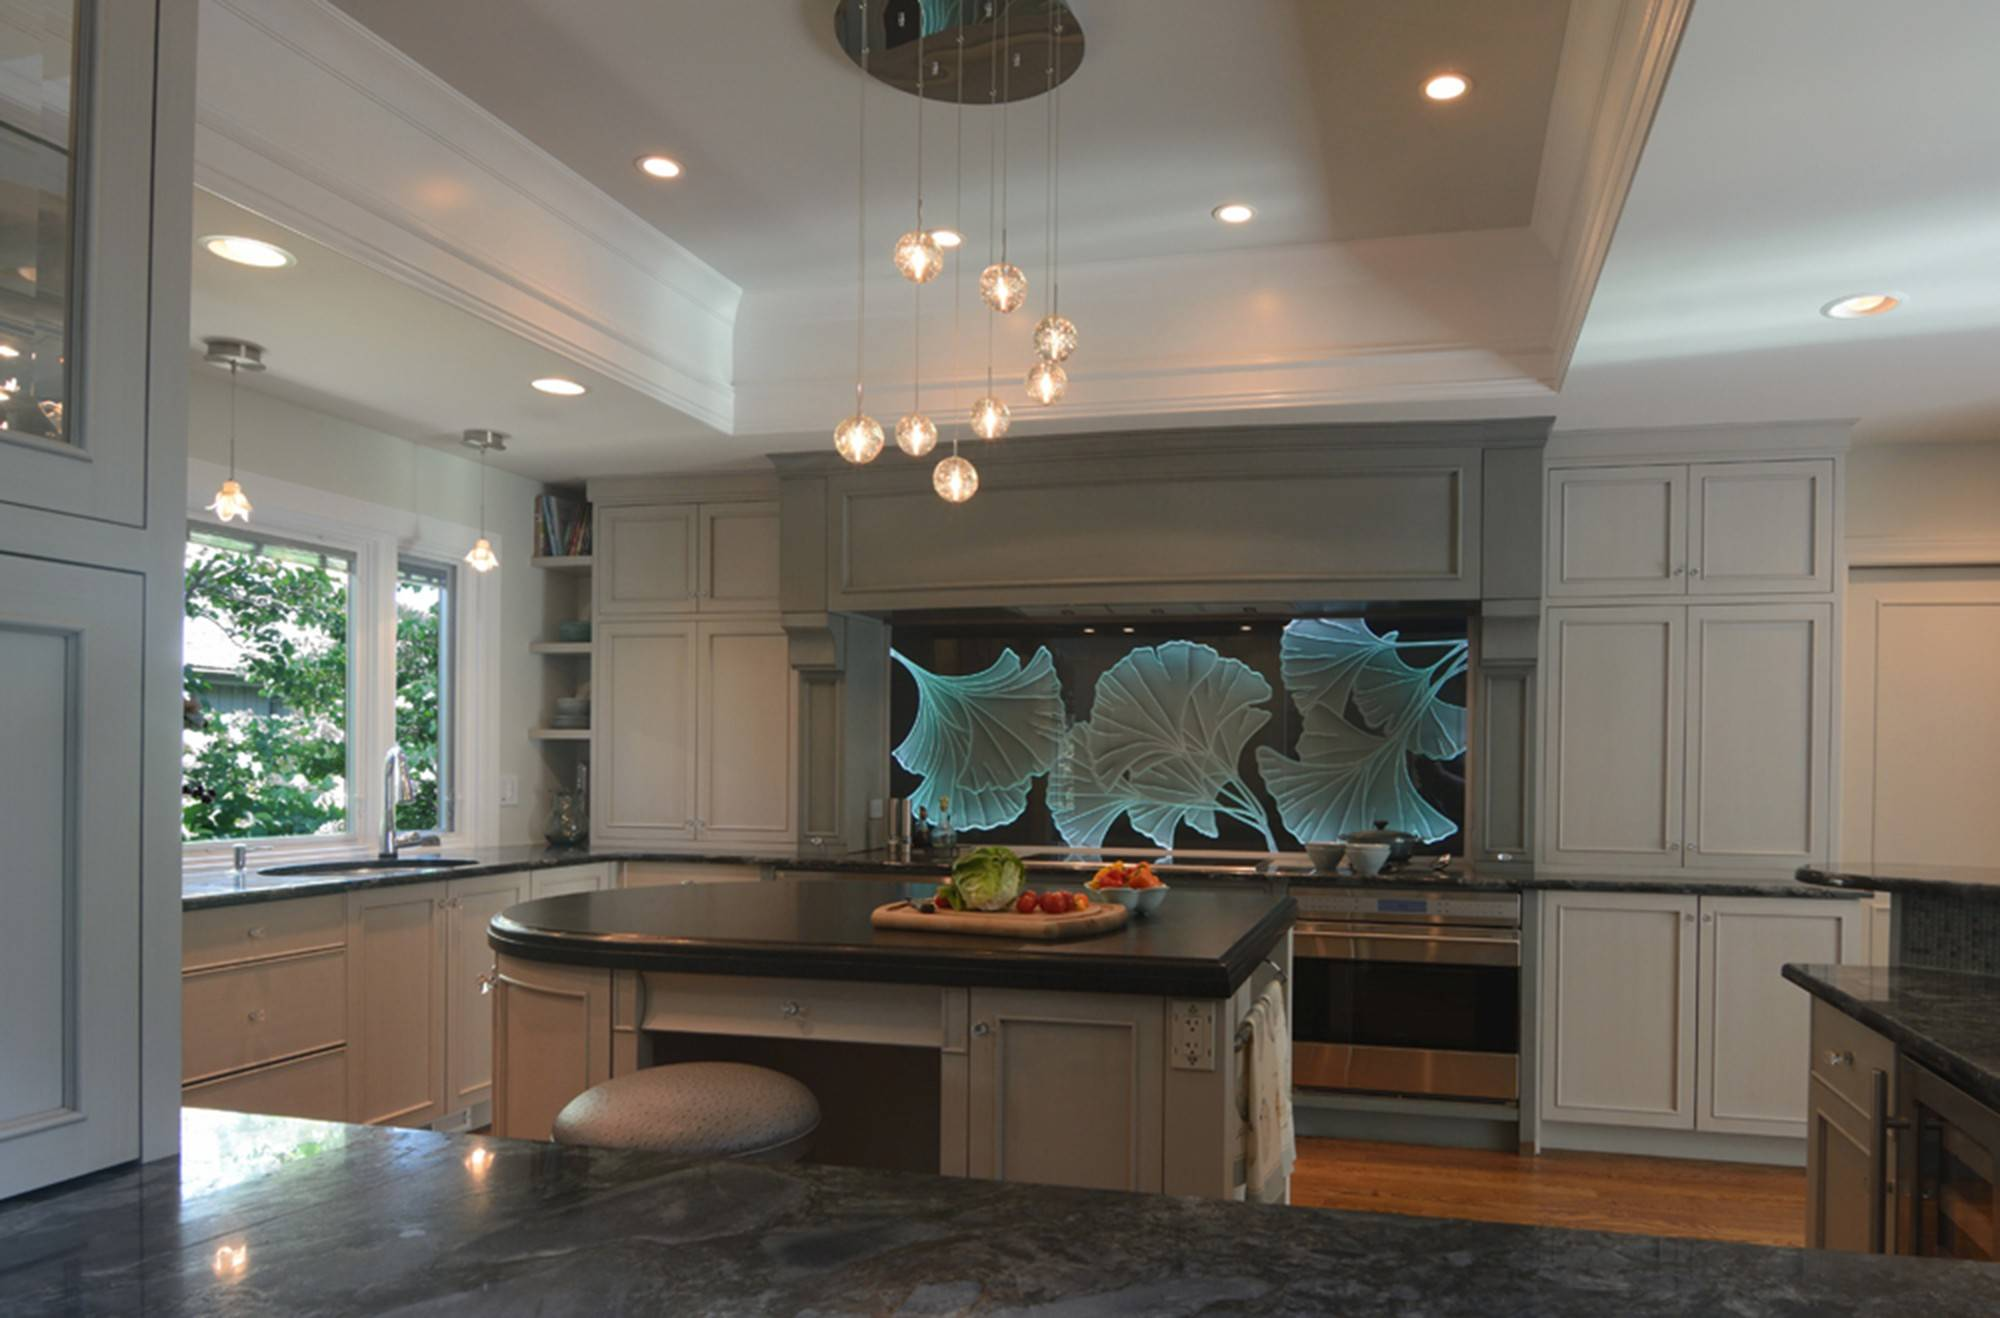 Gray Color Schemes Will Dominate In 2014 Kitchen Design. Pictured Here Is  The 2014 NKBA